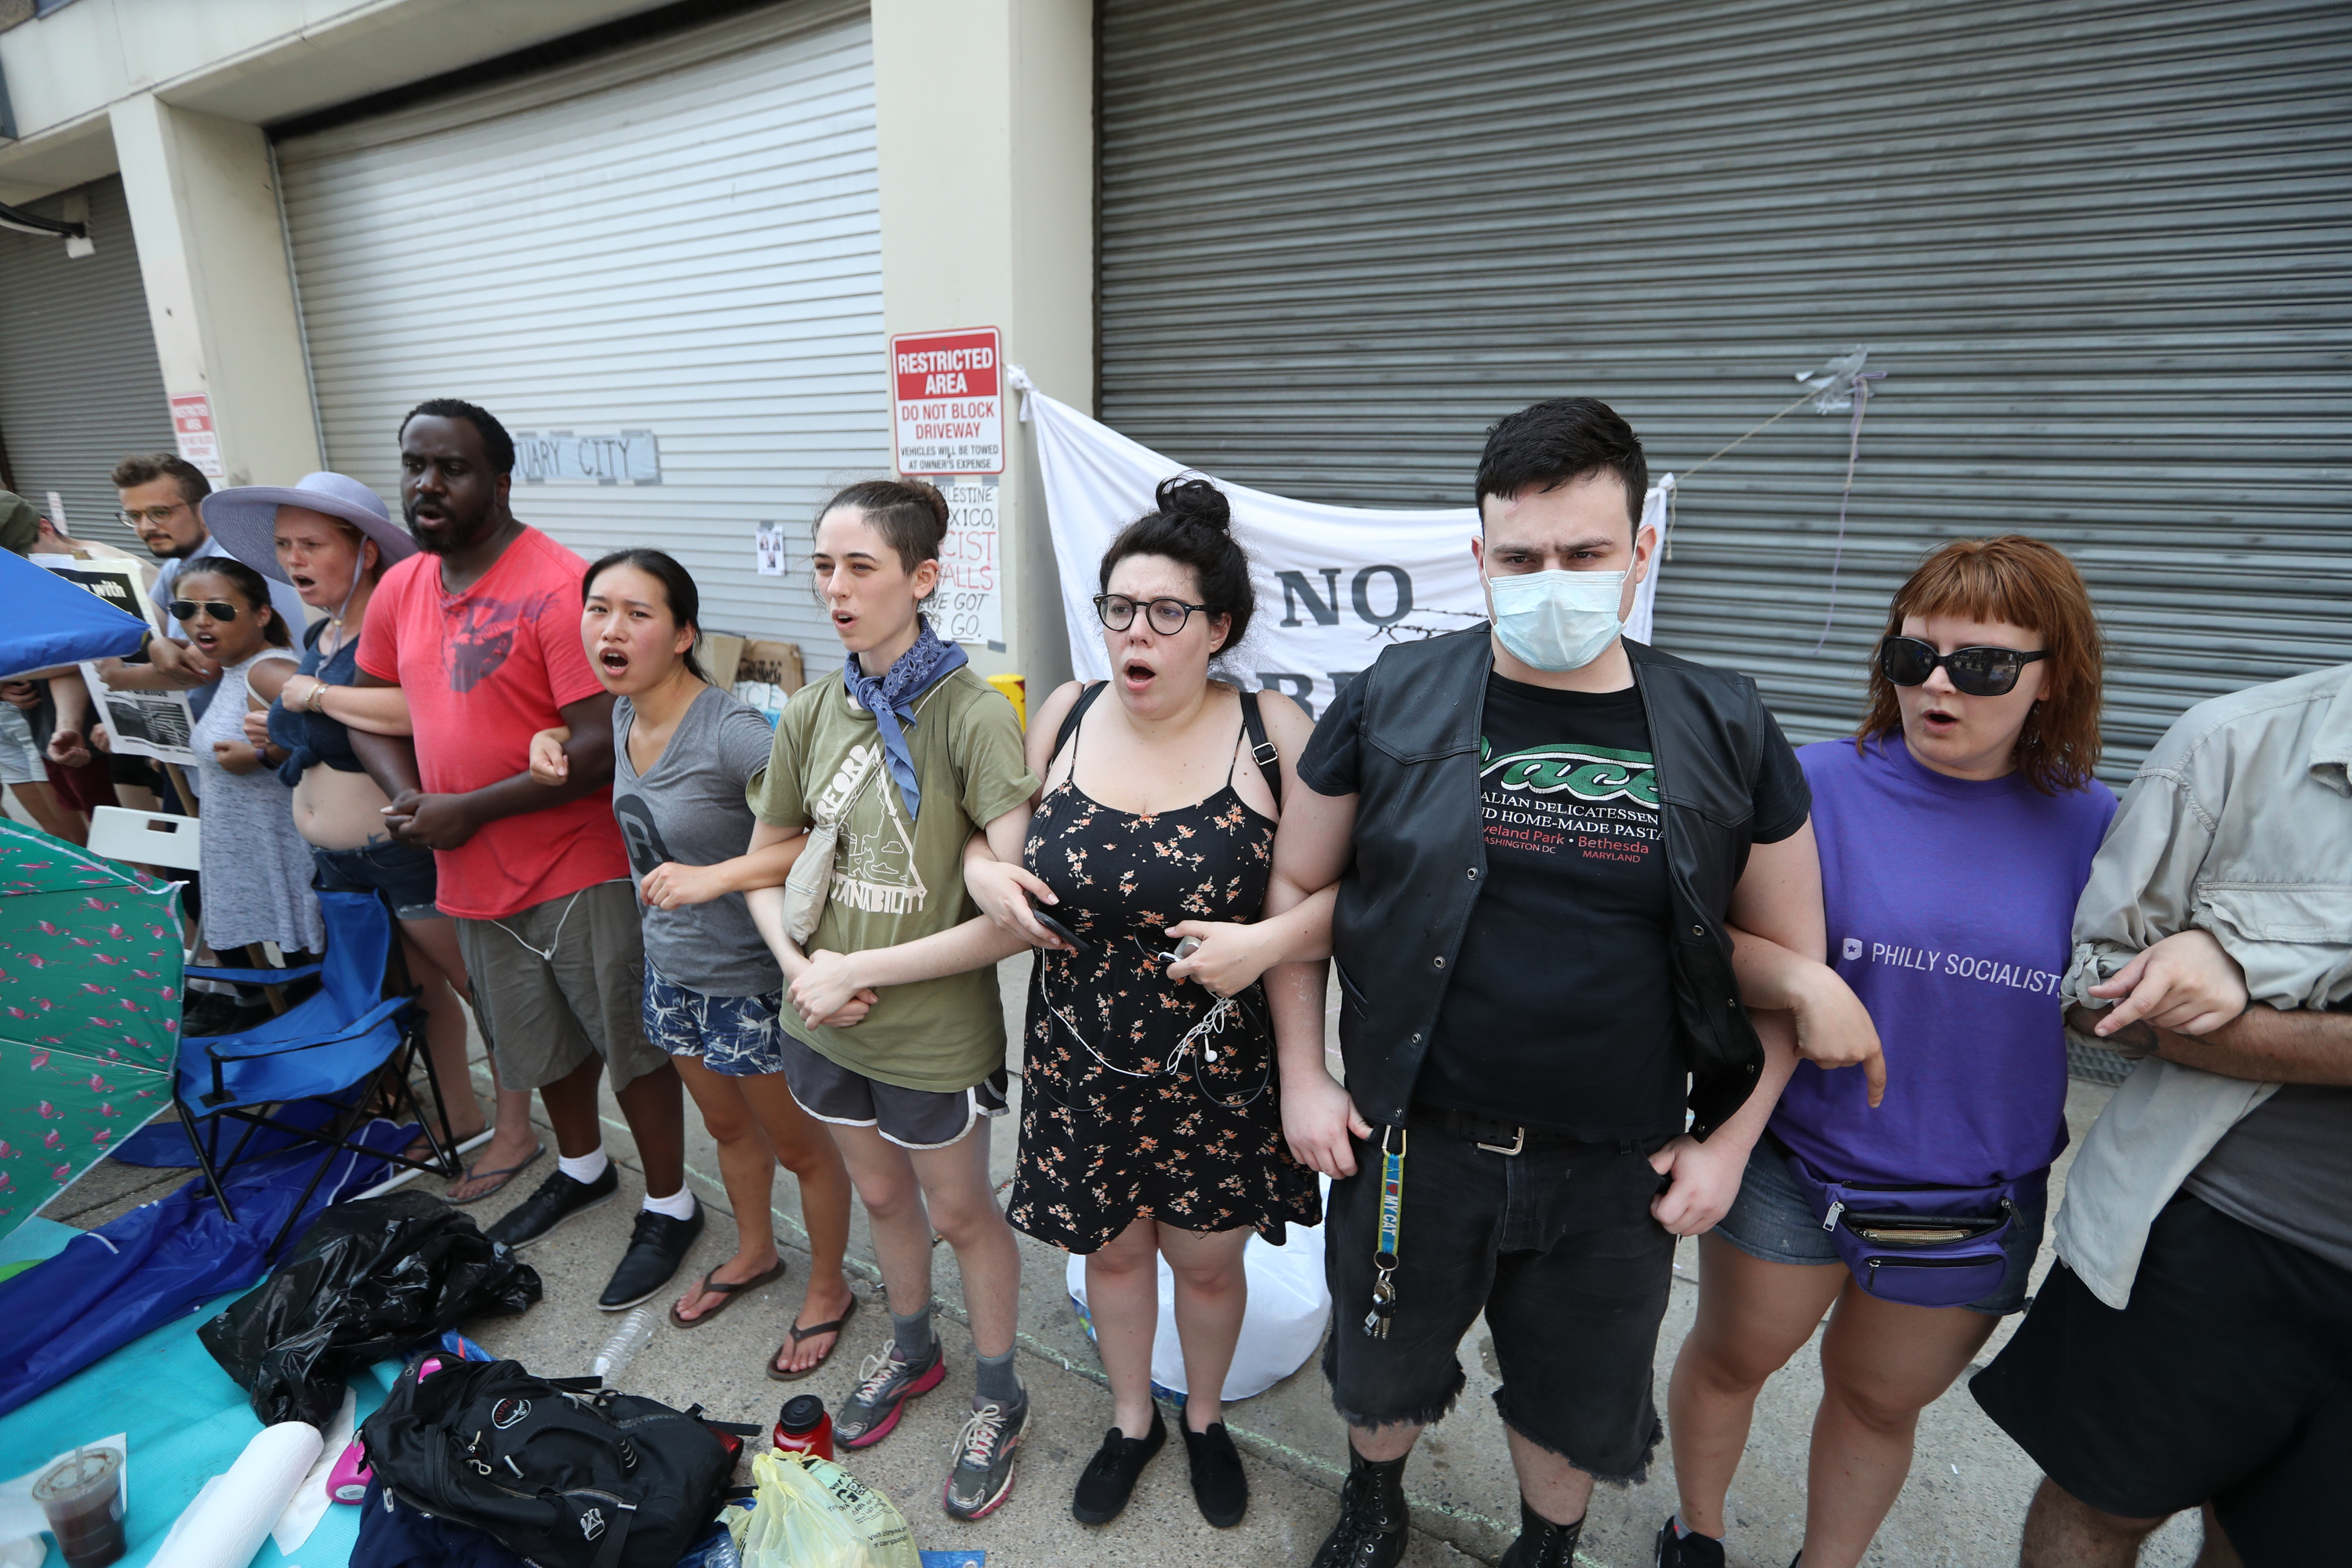 About a dozen protestors are arrested outside the Immigration and Customs Enforcement office in Center City after demanding an end to the agencyÕs policies and cooperation between the city of Philadelphia and ICE, Tuesday July 3, 2018. DAVID SWANSON / Staff Photographer .